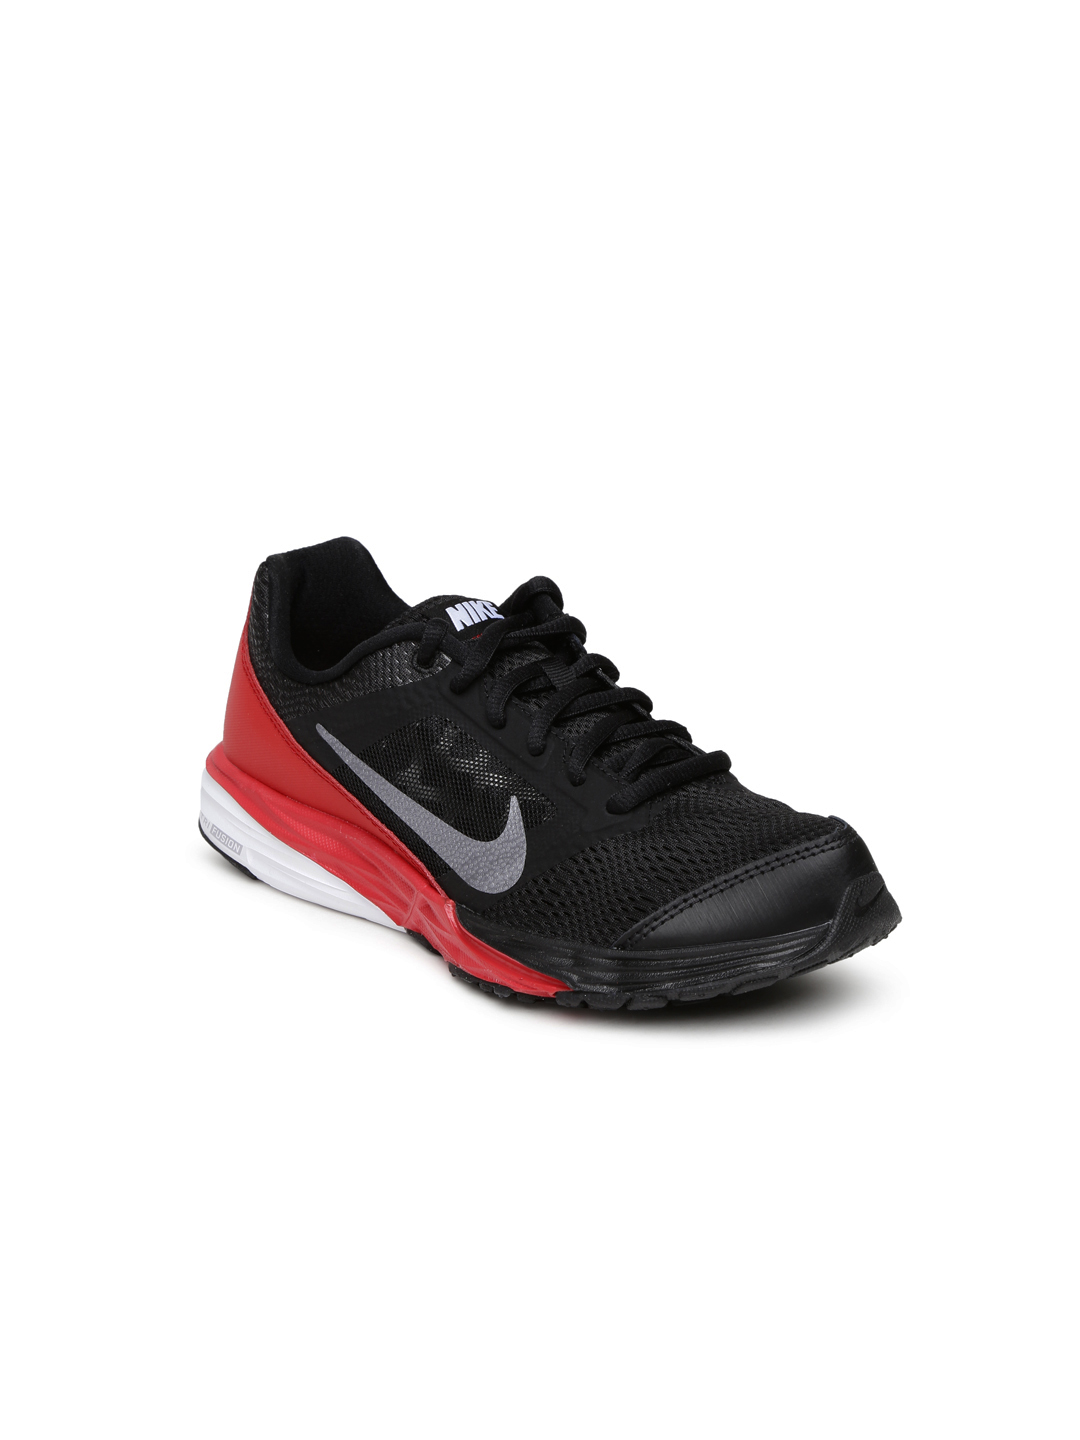 11455615715672-Nike-Boys-Sports-Shoes-3721455615715323-1